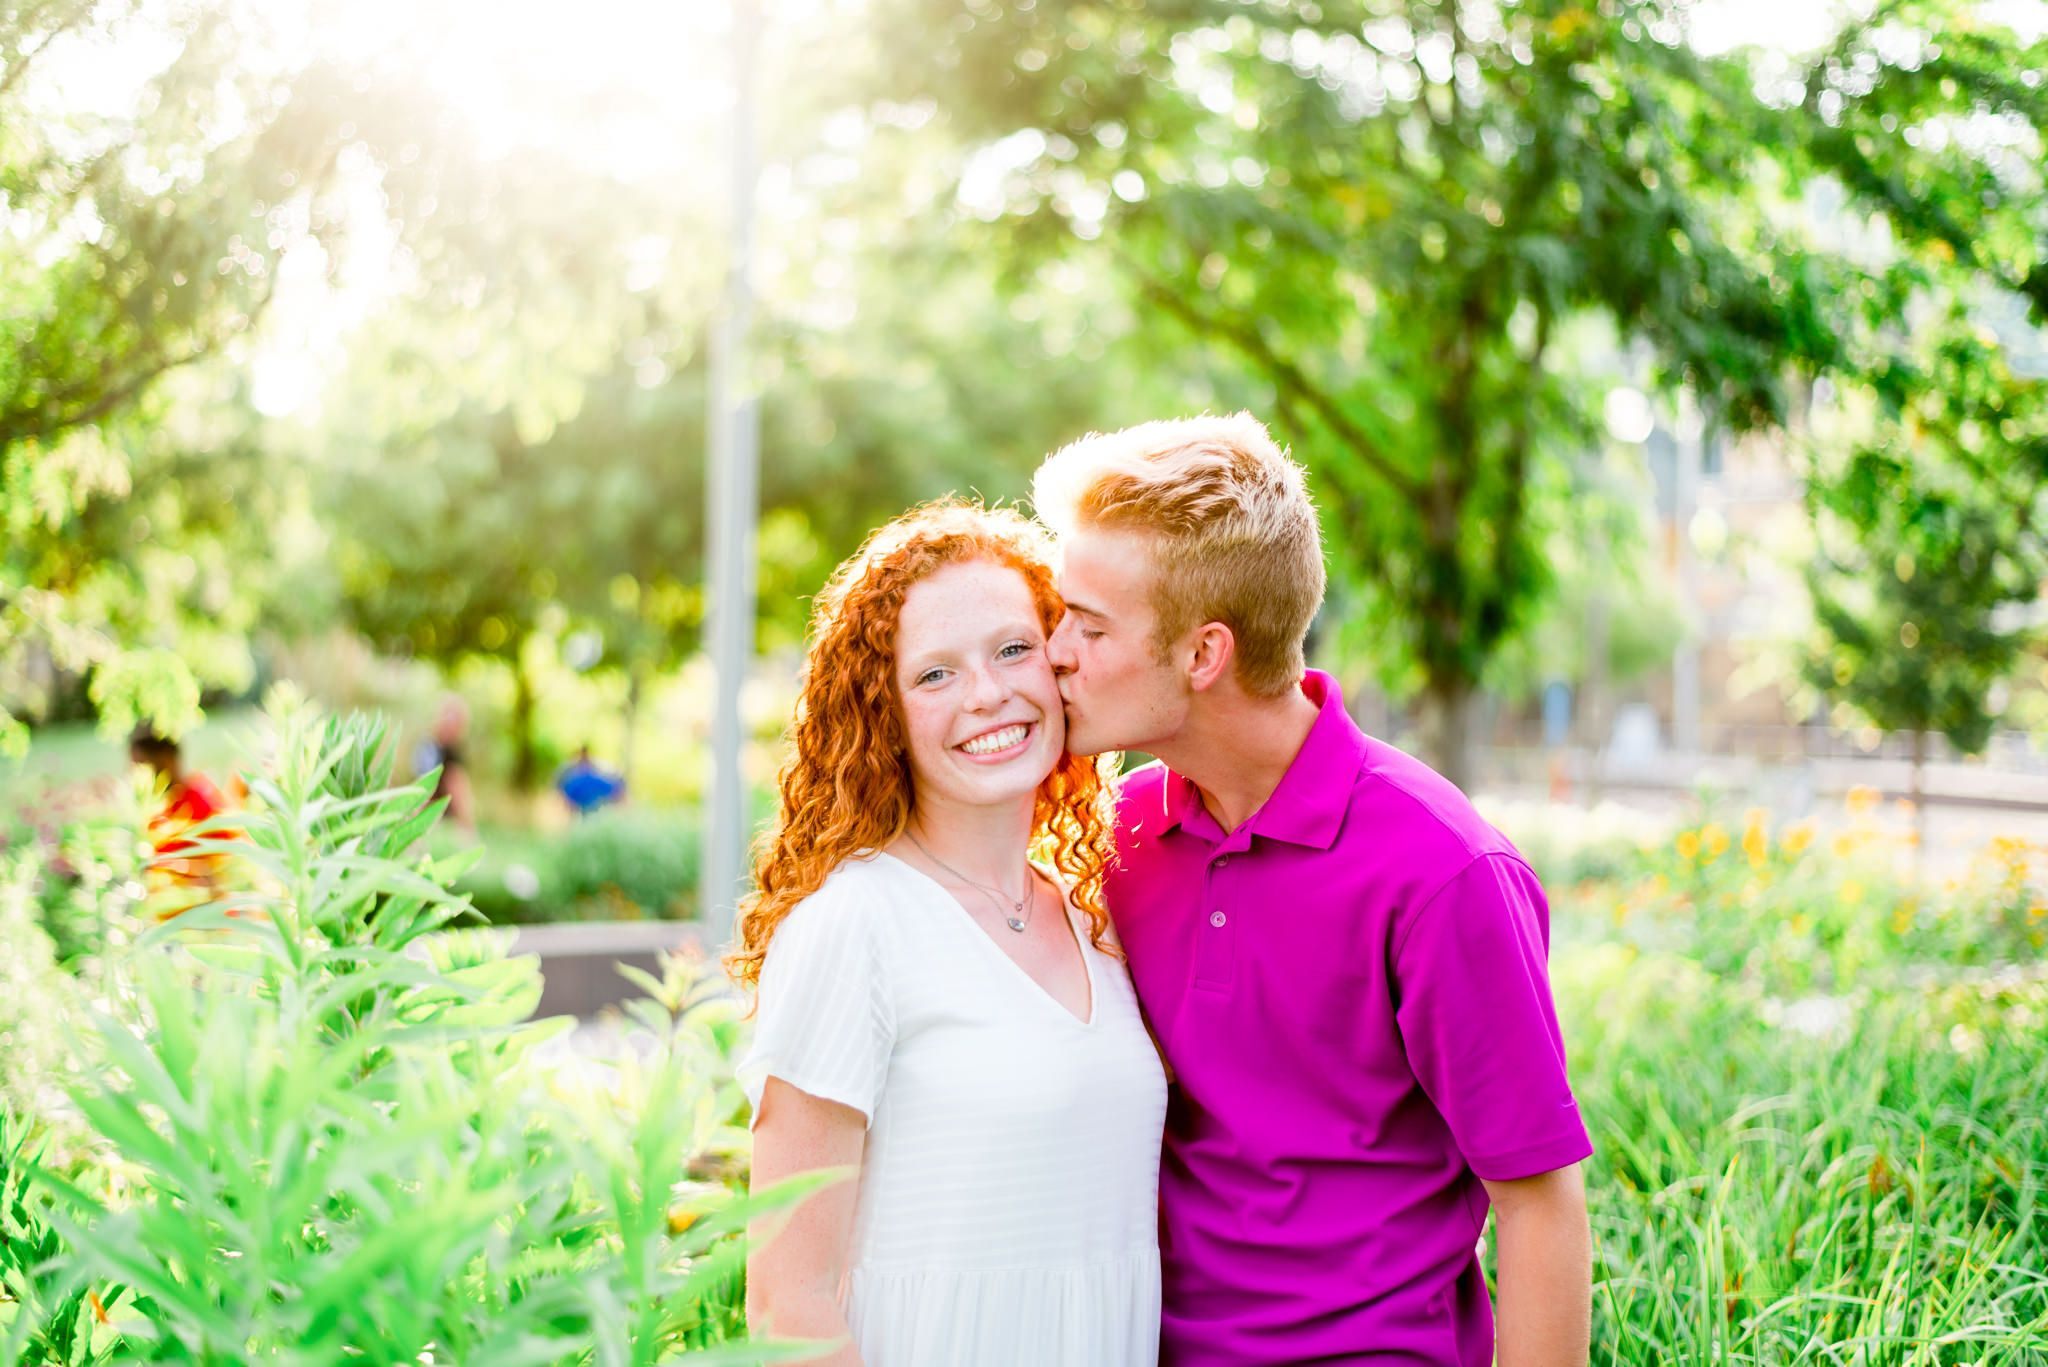 young man kissing young woman with red curly hair on the cheek in the flowers at Smale Park Cincinnati